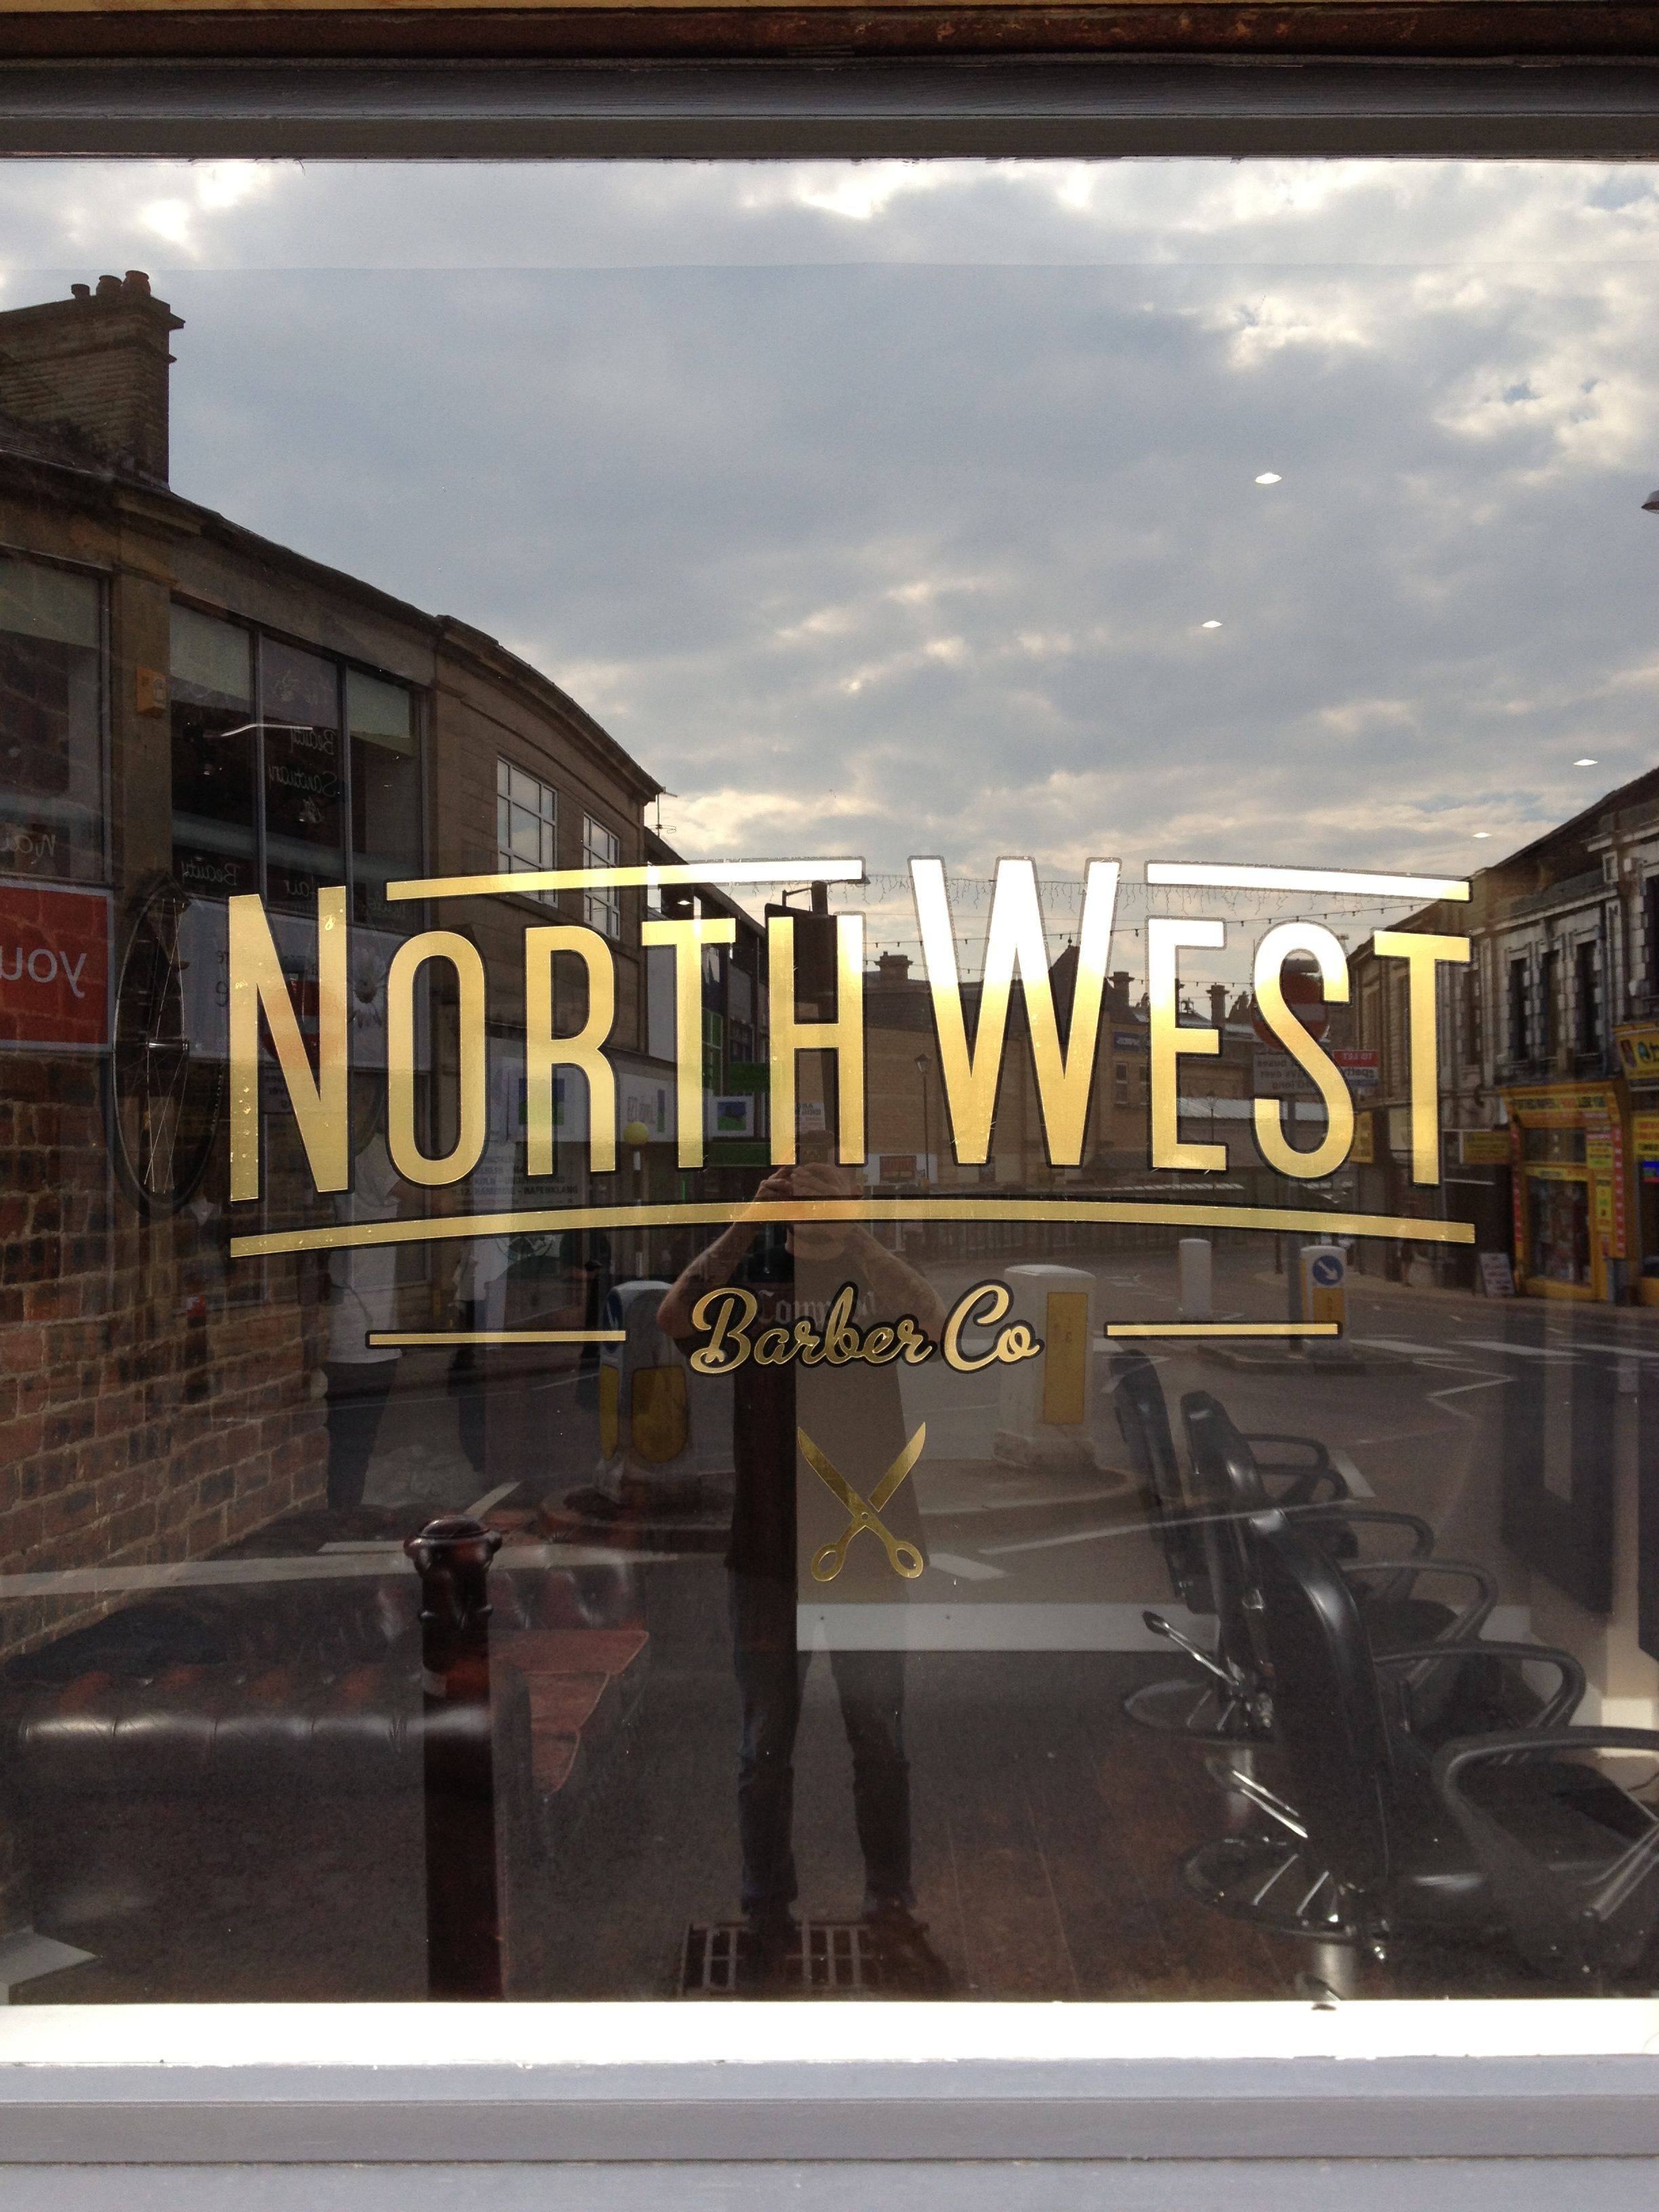 Home North West Barber Co Shop Signage Window Signage Window Graphics